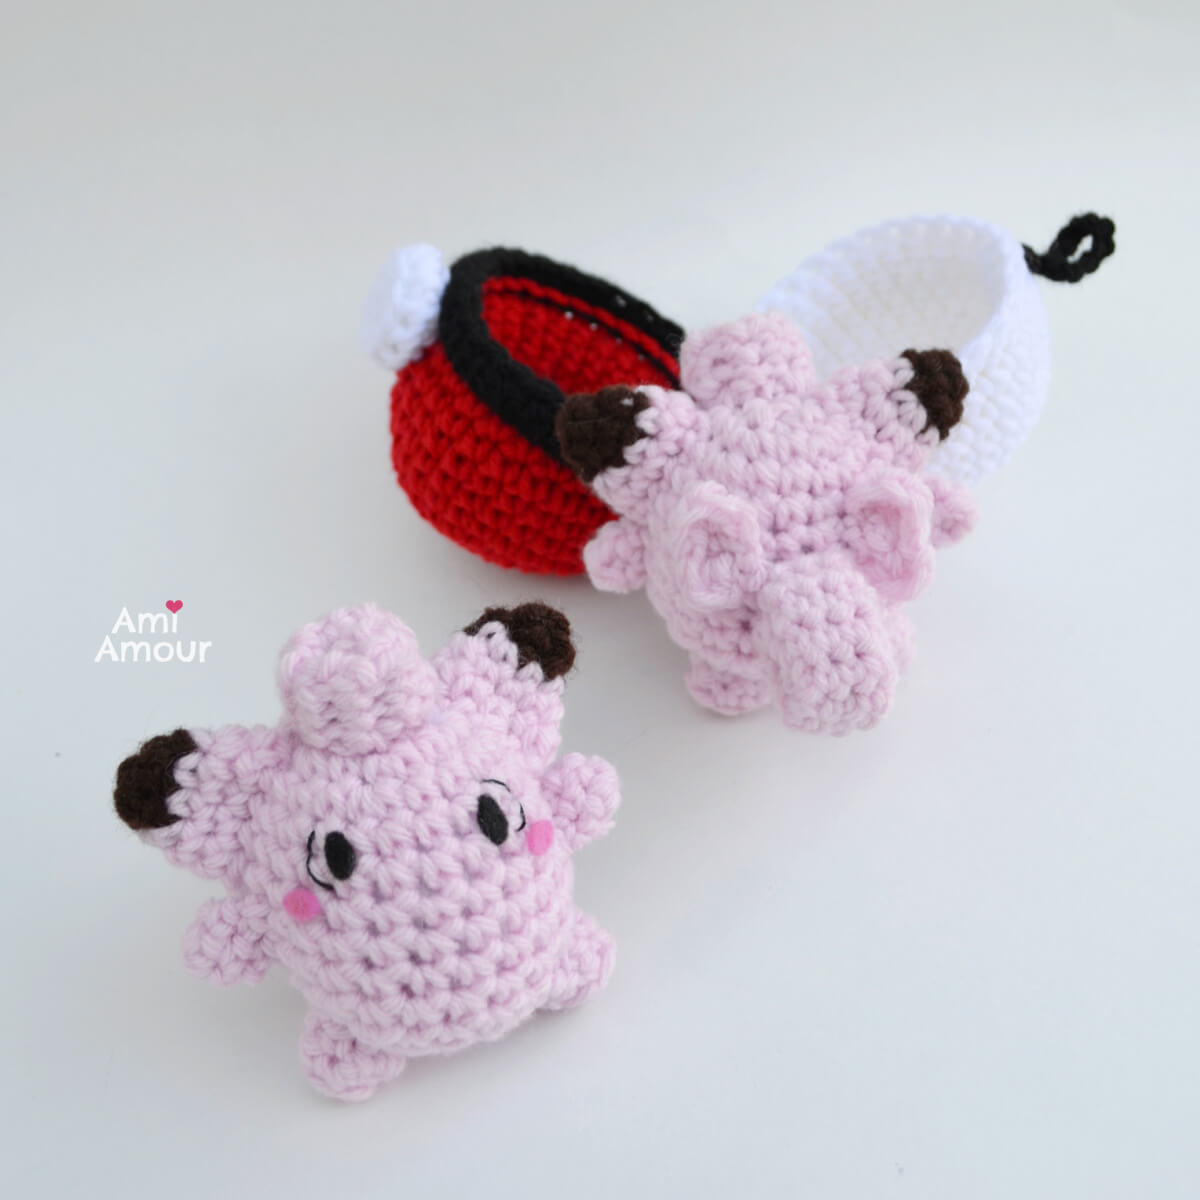 Clefairy Amigurumi - Front and Back View